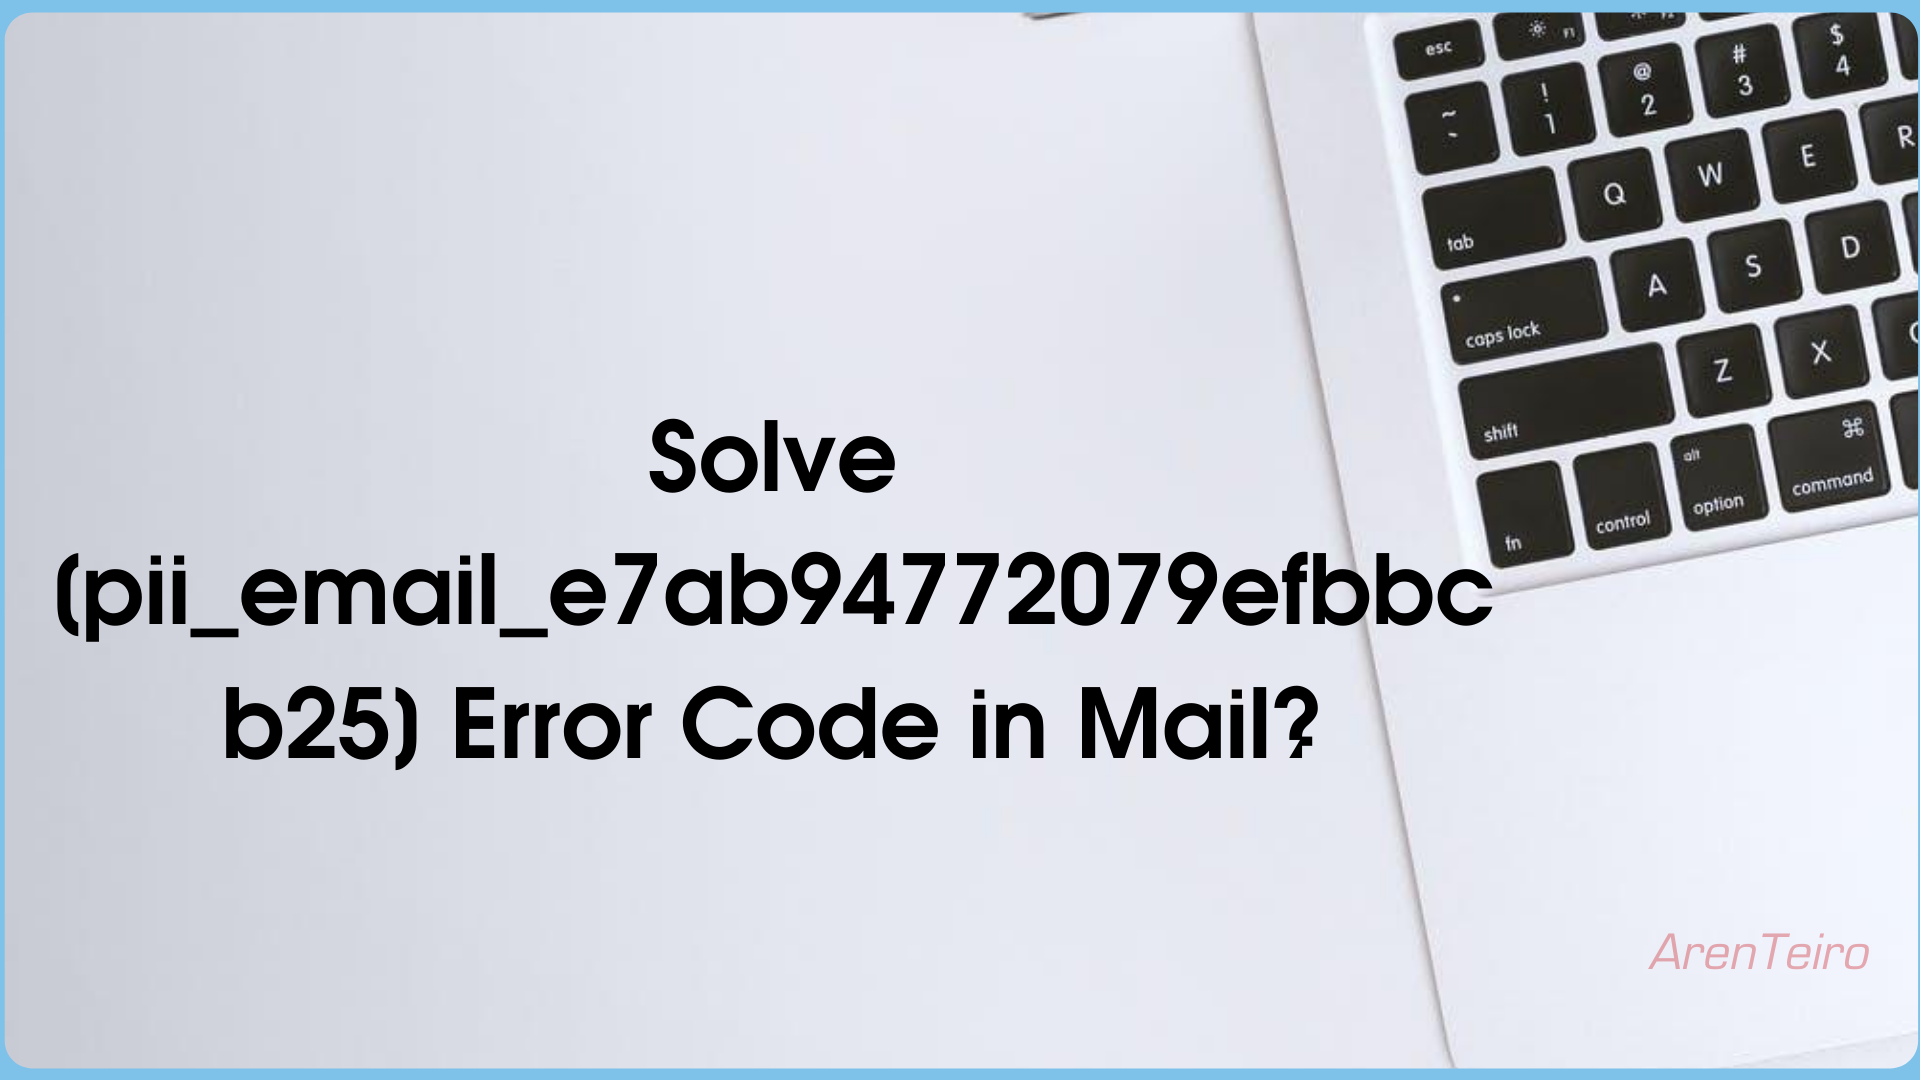 How to Fix [pii_email_e7ab94772079efbbcb25] Error Code in Mail?